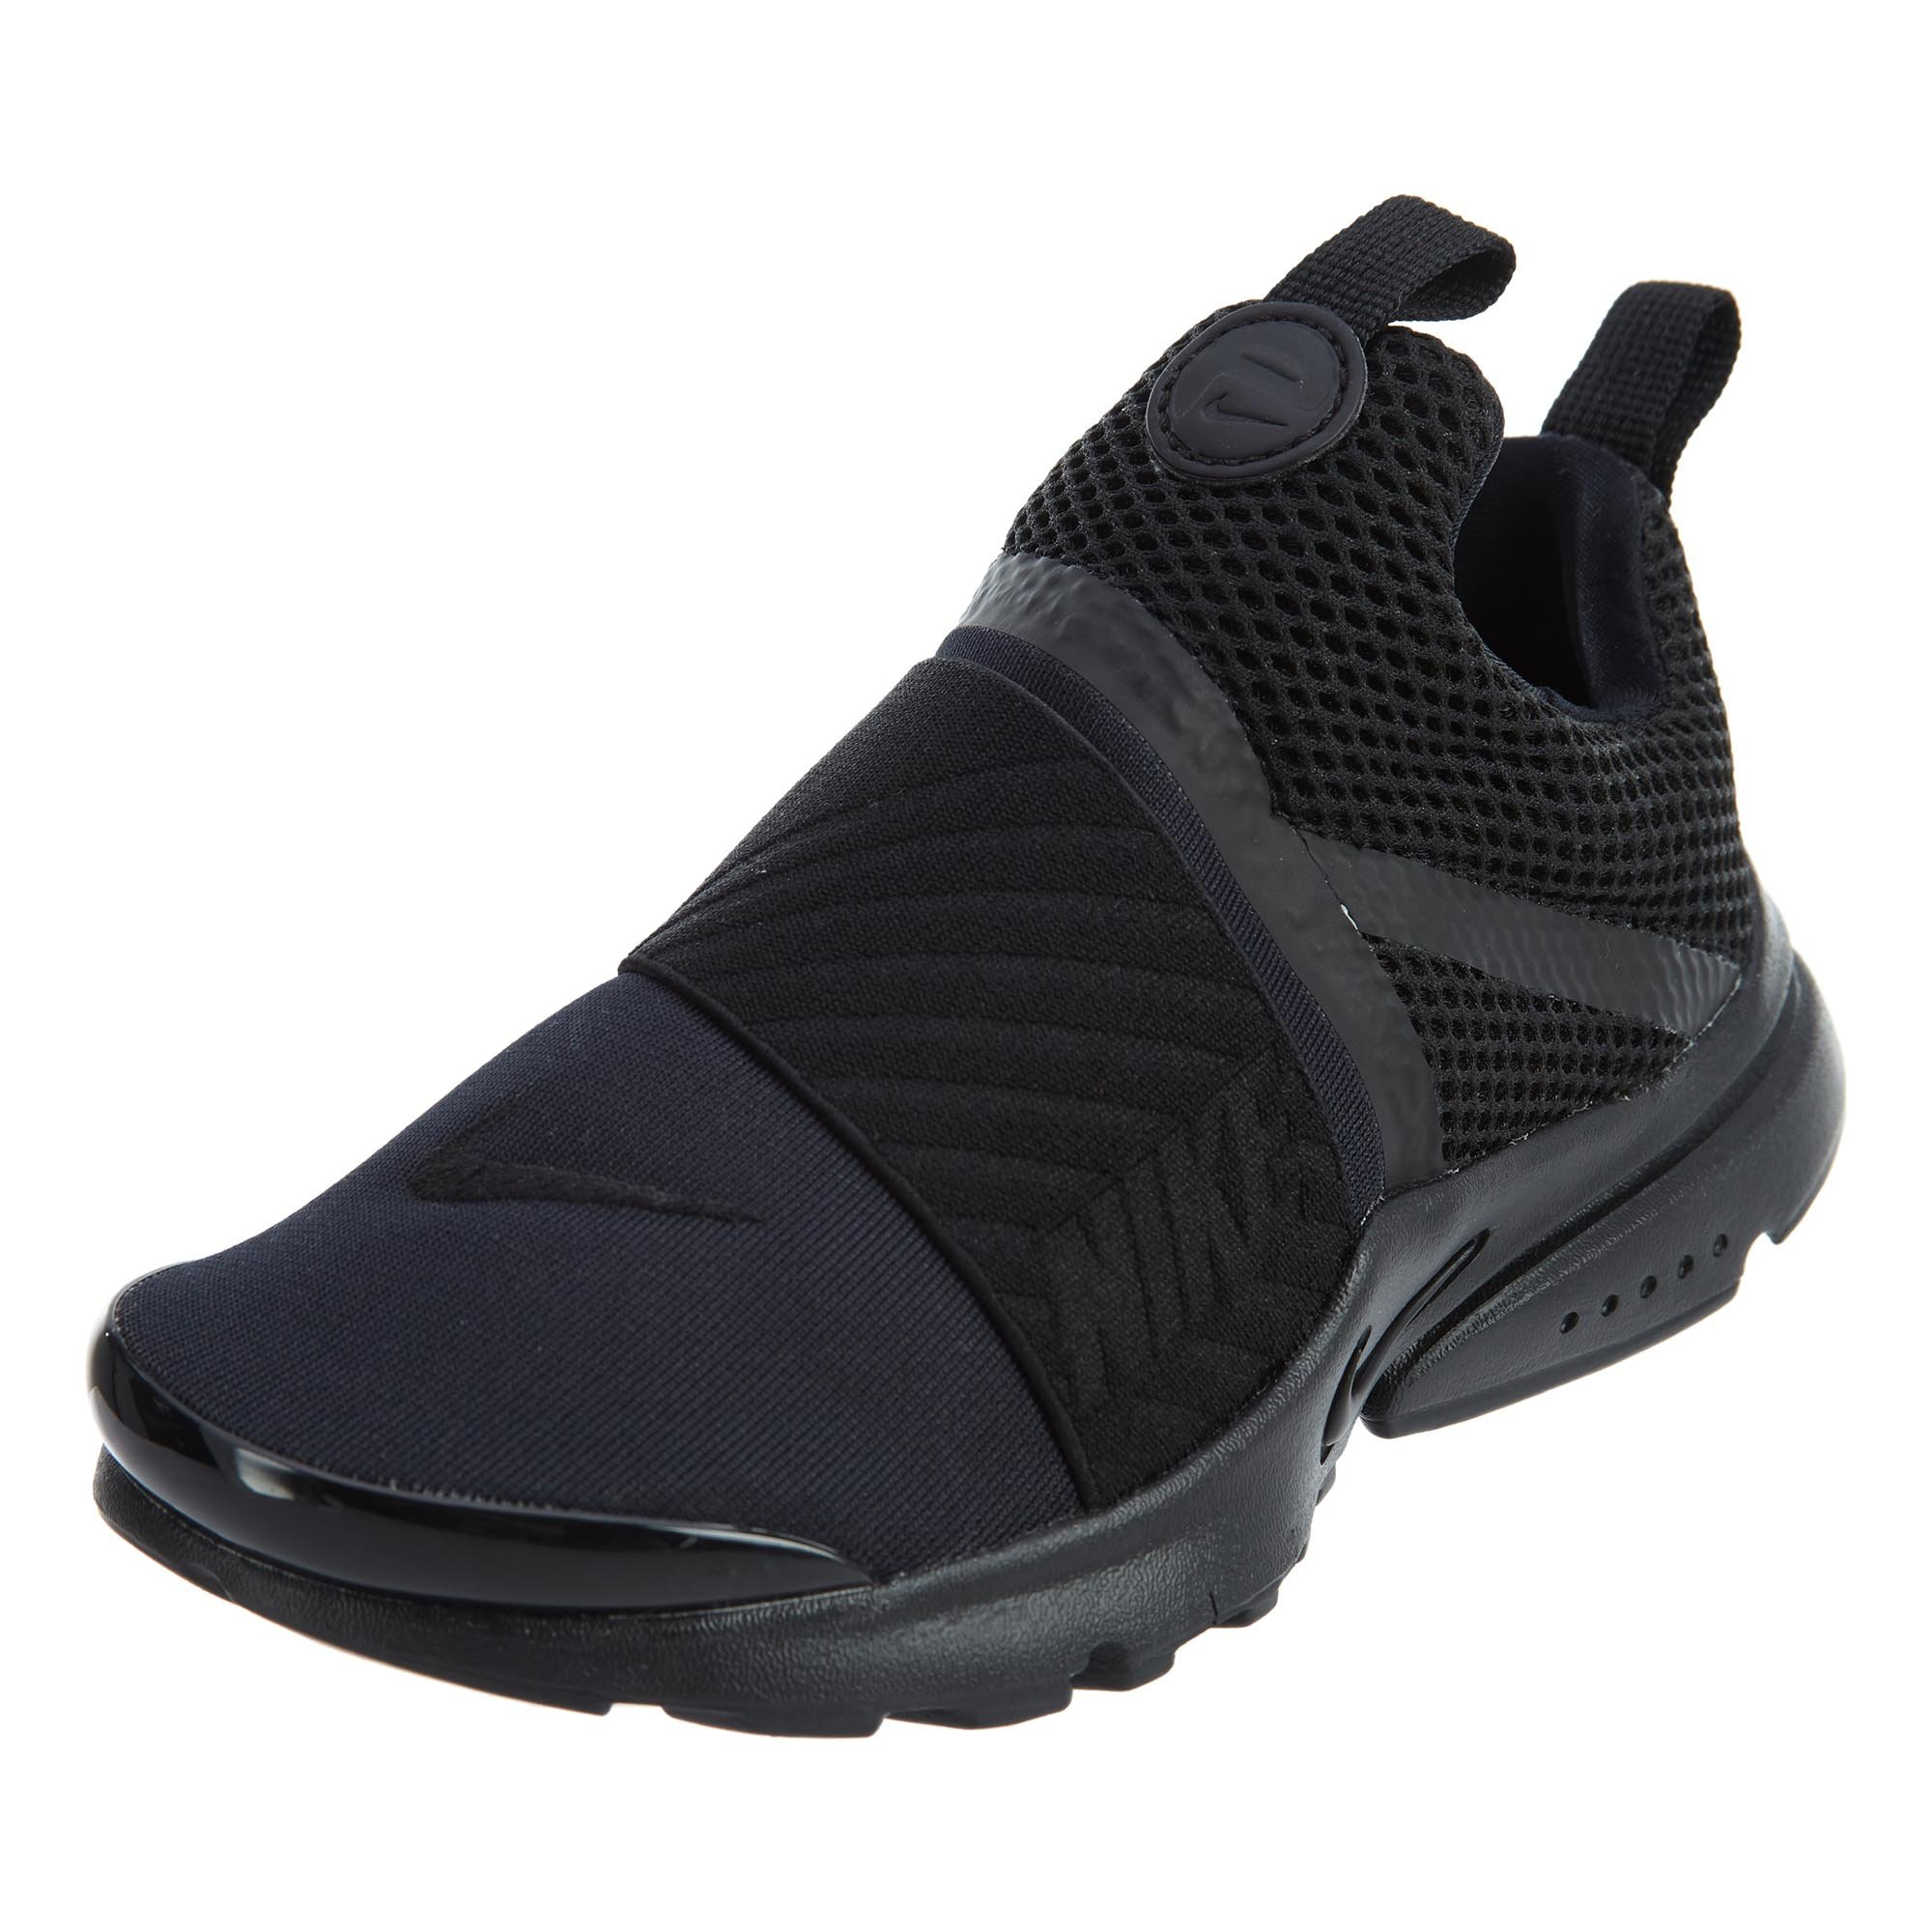 Nike Presto Extreme (PS) Little Kids Shoes Black/Black 870023-001 (1 M US)